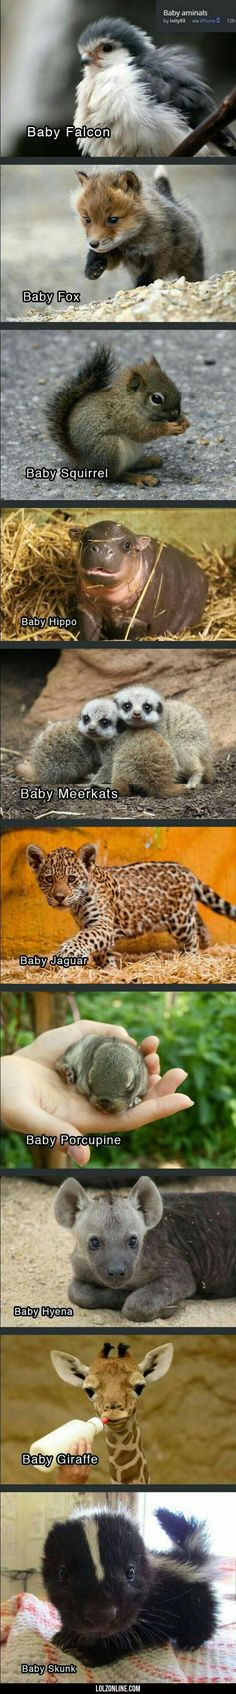 This pic is so cute! I can't believe how adorable baby animals can be! The Animals, Cute Little Animals, Cute Funny Animals, Cute Dogs, Cute Babies, Small Animals, Cutest Animals, Wild Animals, Exotic Animals